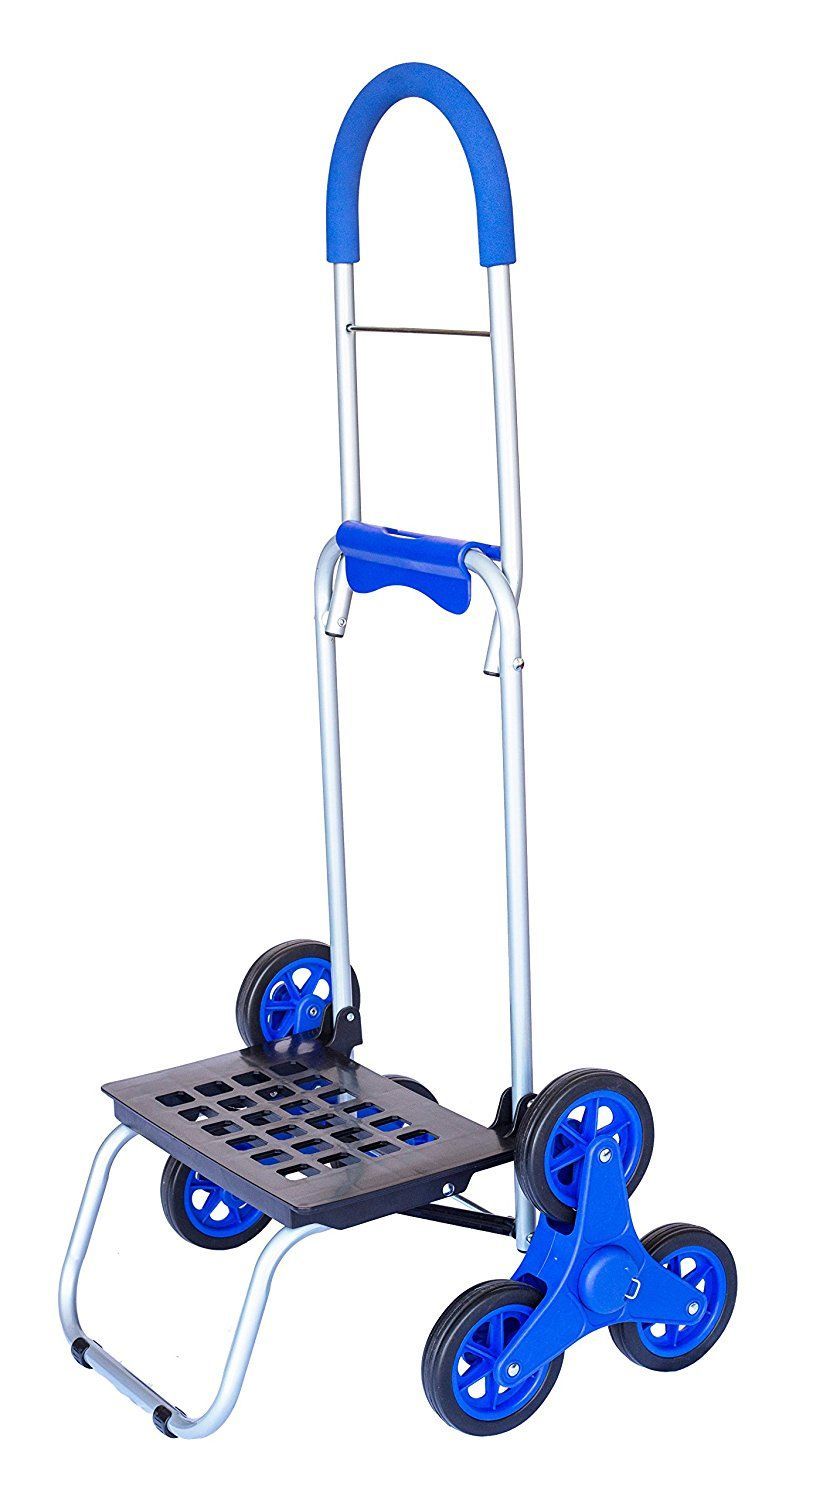 how to use trolley to move house hold items